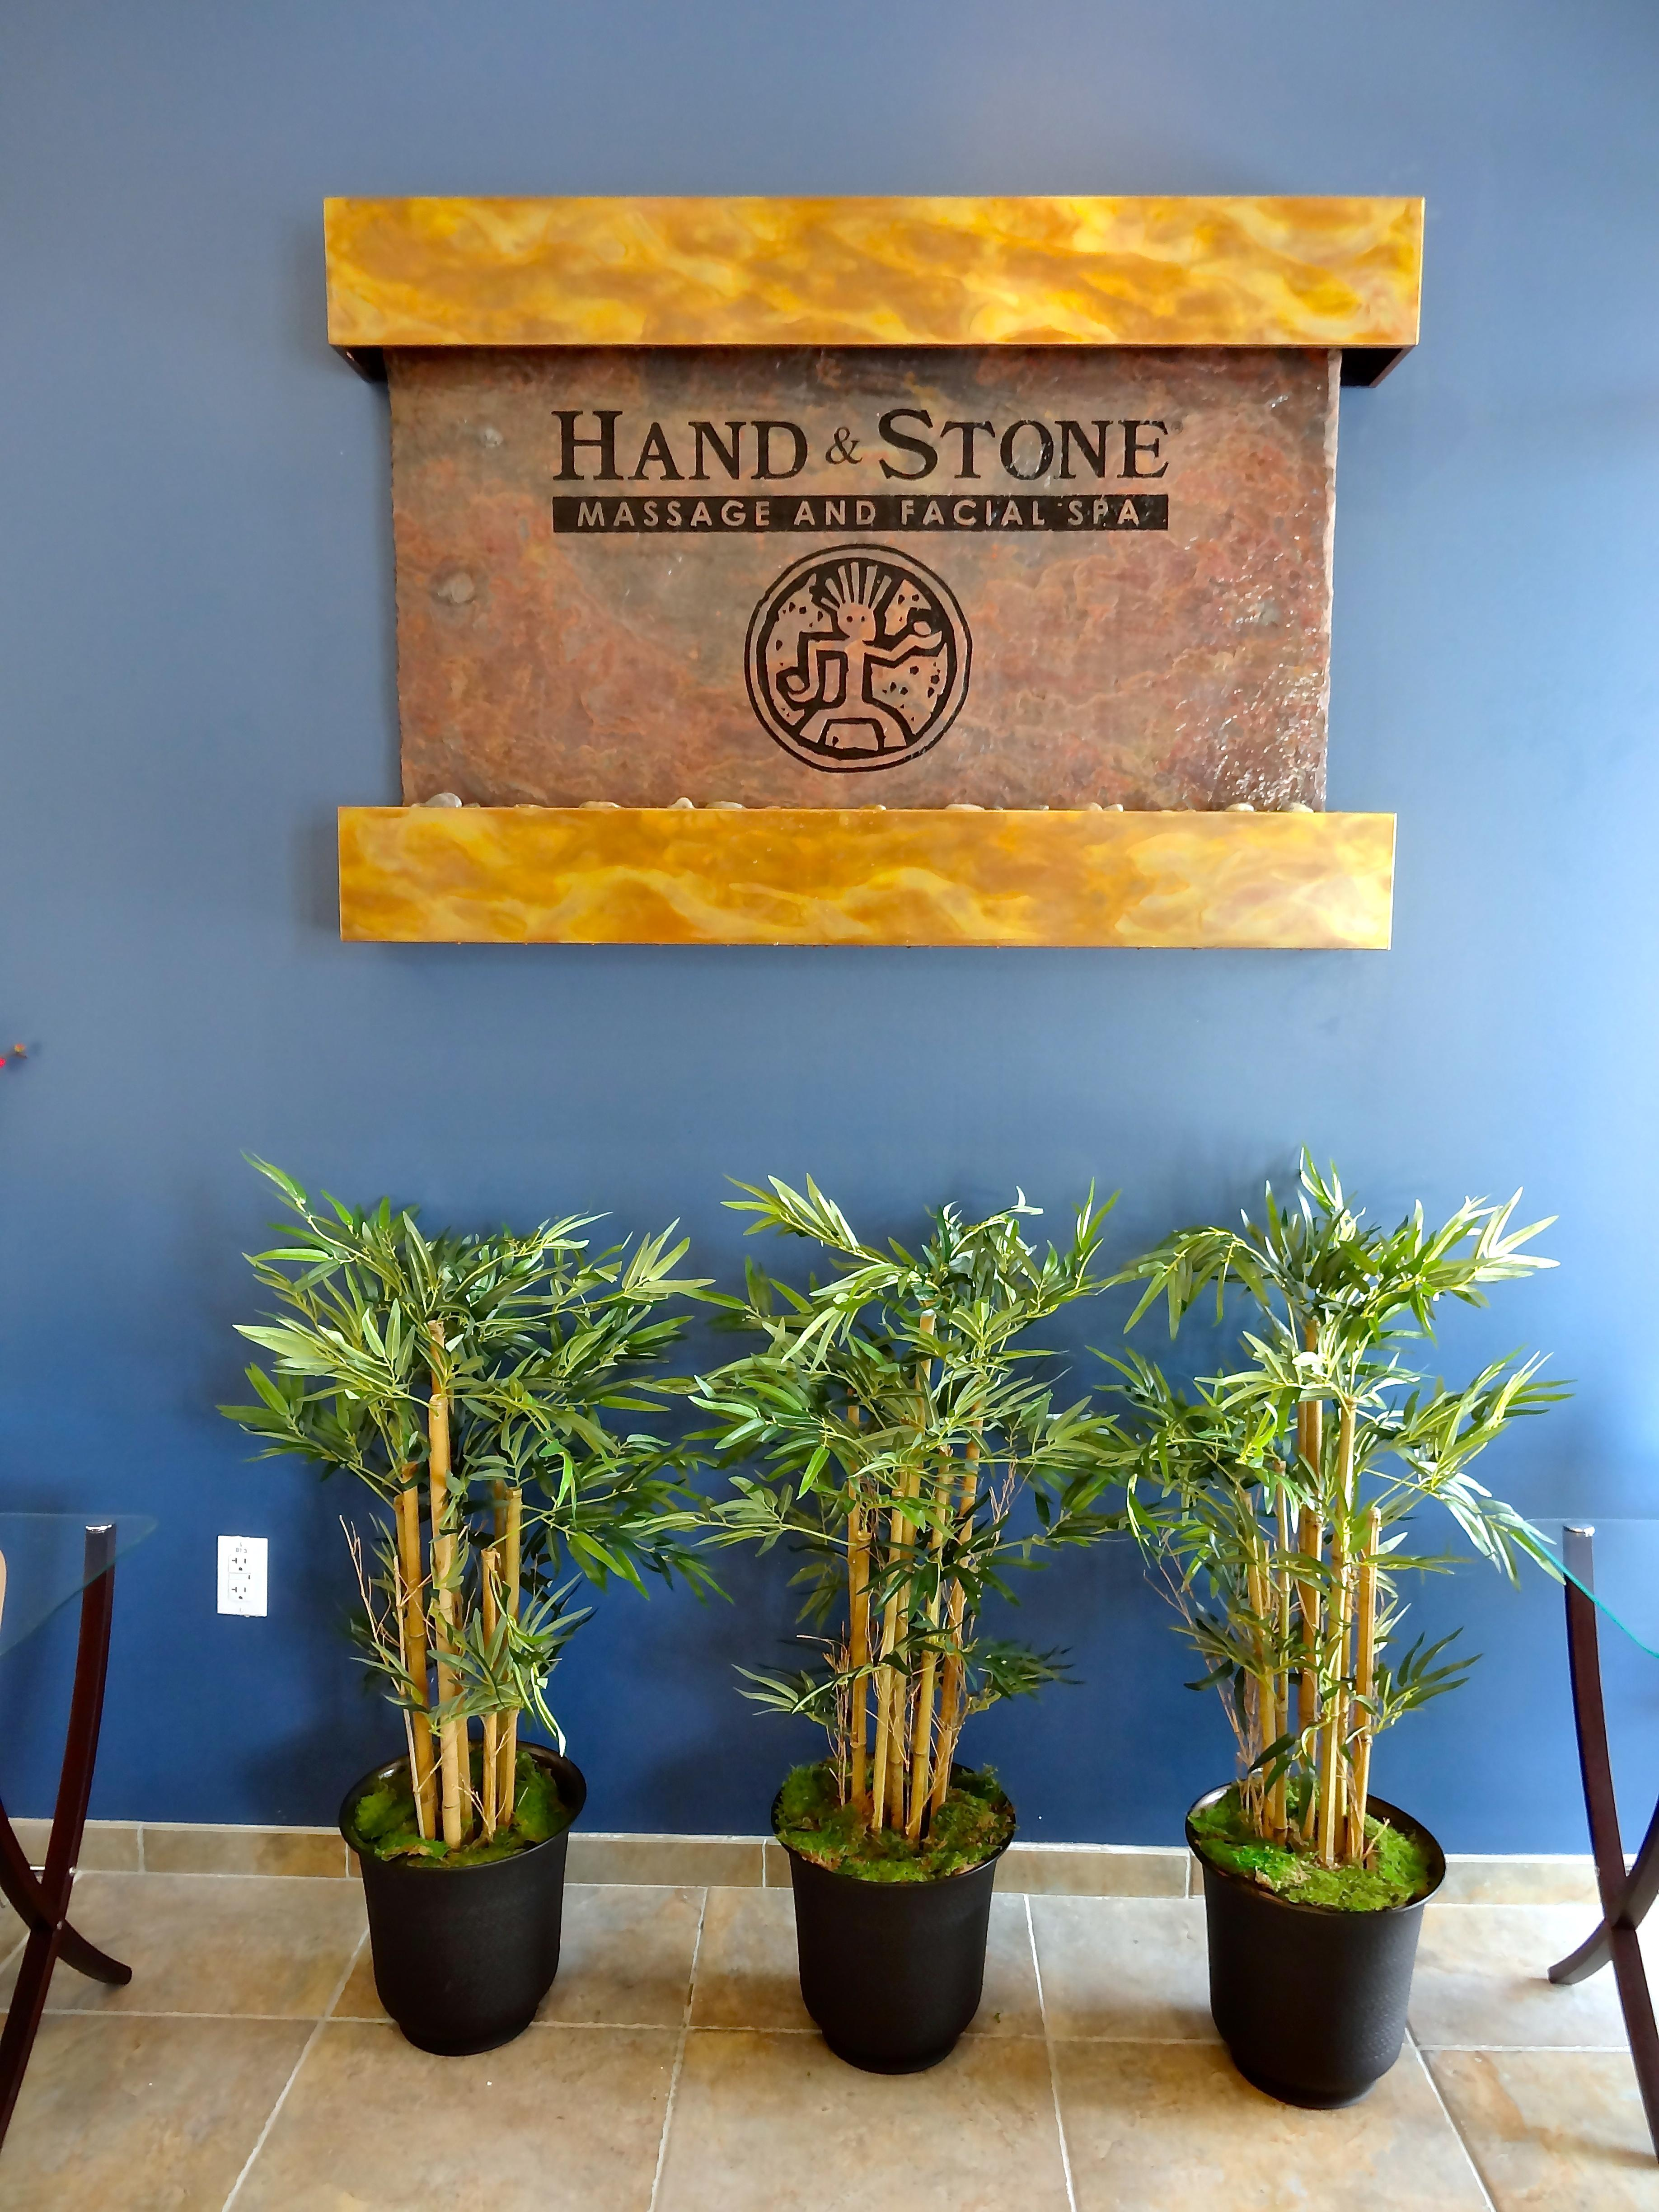 New Hand and Stone Massage and Facial Spa in Lakewood